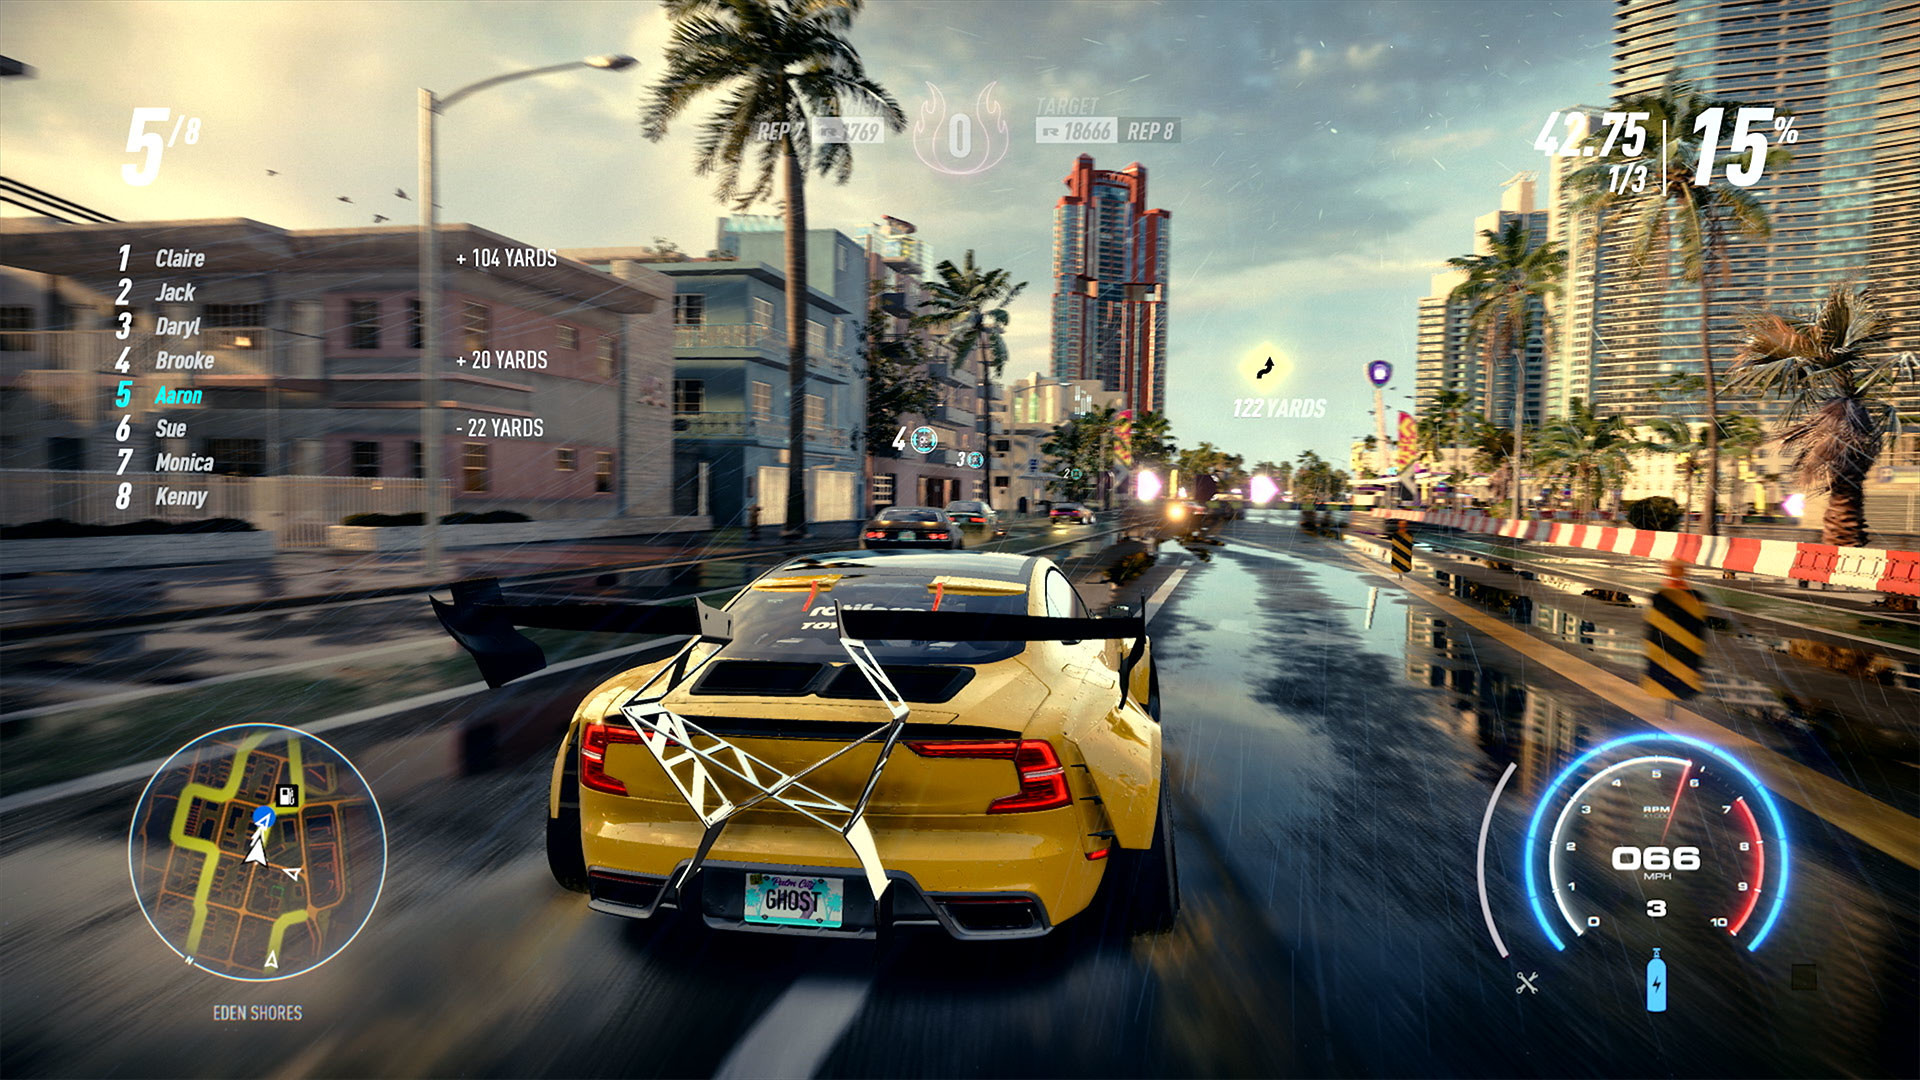 Скриншот *Need for Speed Heat [PS4] 5.05 / 6.72 / 7.02 [EUR] (2019) [Русский] (v1.06)*